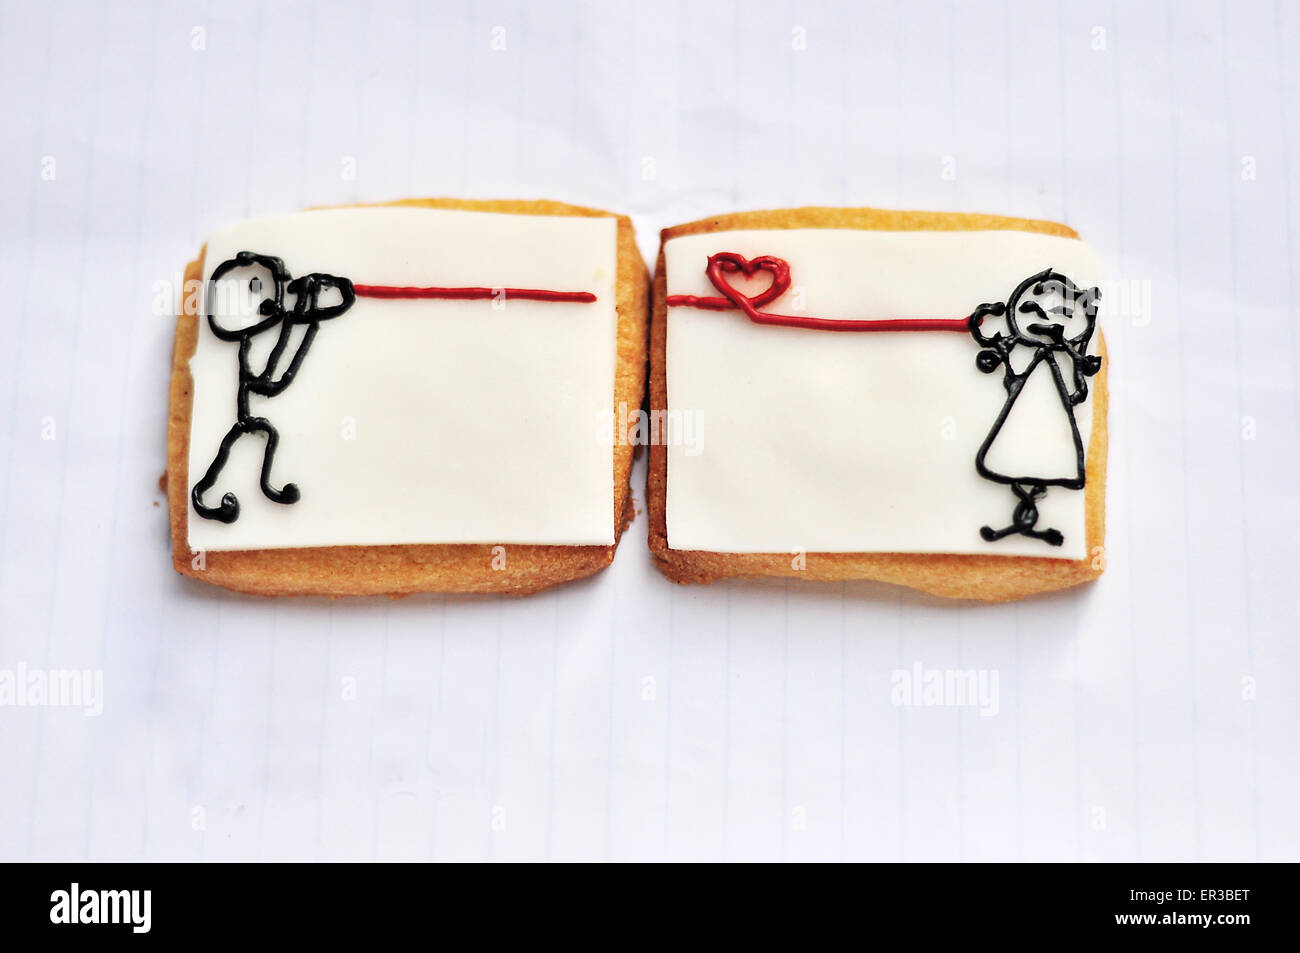 Cheese cracker with drawings of a girl talking to a boy using tin can telephone - Stock Image